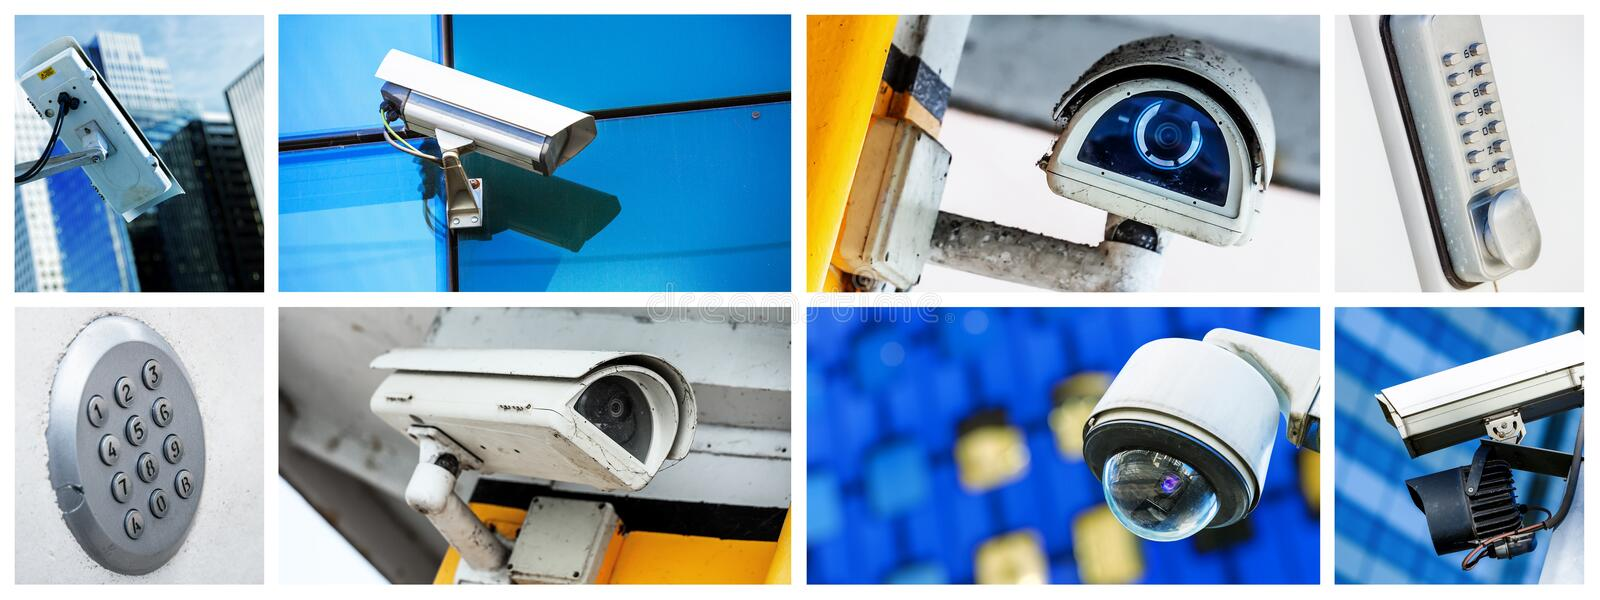 Panoramic collage of closeup security CCTV camera or surveillance system. Concept Panoramic collage of closeup security CCTV camera or surveillance system stock photography